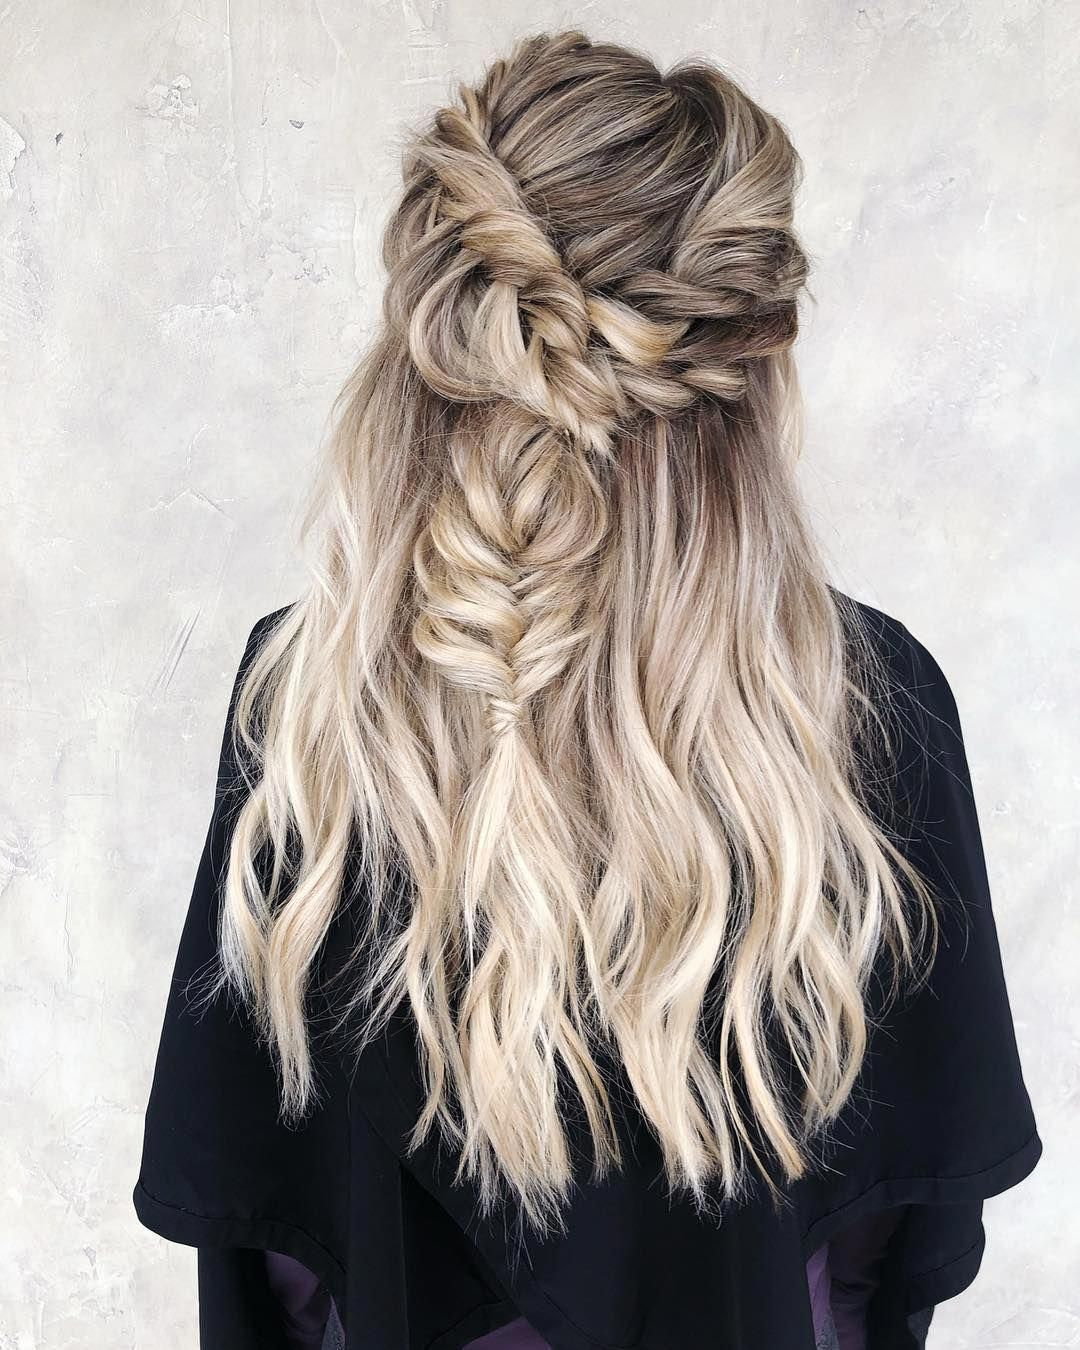 "Beautiful braided half up half down hairstyle – braids , hairstyles <a class=""pintag"" href=""/explore/hair/"" title=""#hair explore Pinterest"">#hair</a> <a class=""pintag"" href=""/explore/hairstyles/"" title=""#hairstyles explore Pinterest"">#hairstyles</a> <a class=""pintag"" href=""/explore/braids/"" title=""#braids explore Pinterest"">#braids</a> <a class=""pintag"" href=""/explore/halfuphalfdown/"" title=""#halfuphalfdown explore Pinterest"">#halfuphalfdown</a> <a class=""pintag"" href=""/explore/braidhair/"" title=""#braidhair explore Pinterest"">#braidhair</a> <a class=""pintag"" href=""/explore/Braidedhairstyles/"" title=""#Braidedhairstyles explore Pinterest"">#Braidedhairstyles</a><p><a href=""http://www.homeinteriordesign.org/2018/02/short-guide-to-interior-decoration.html"">Short guide to interior decoration</a></p>"